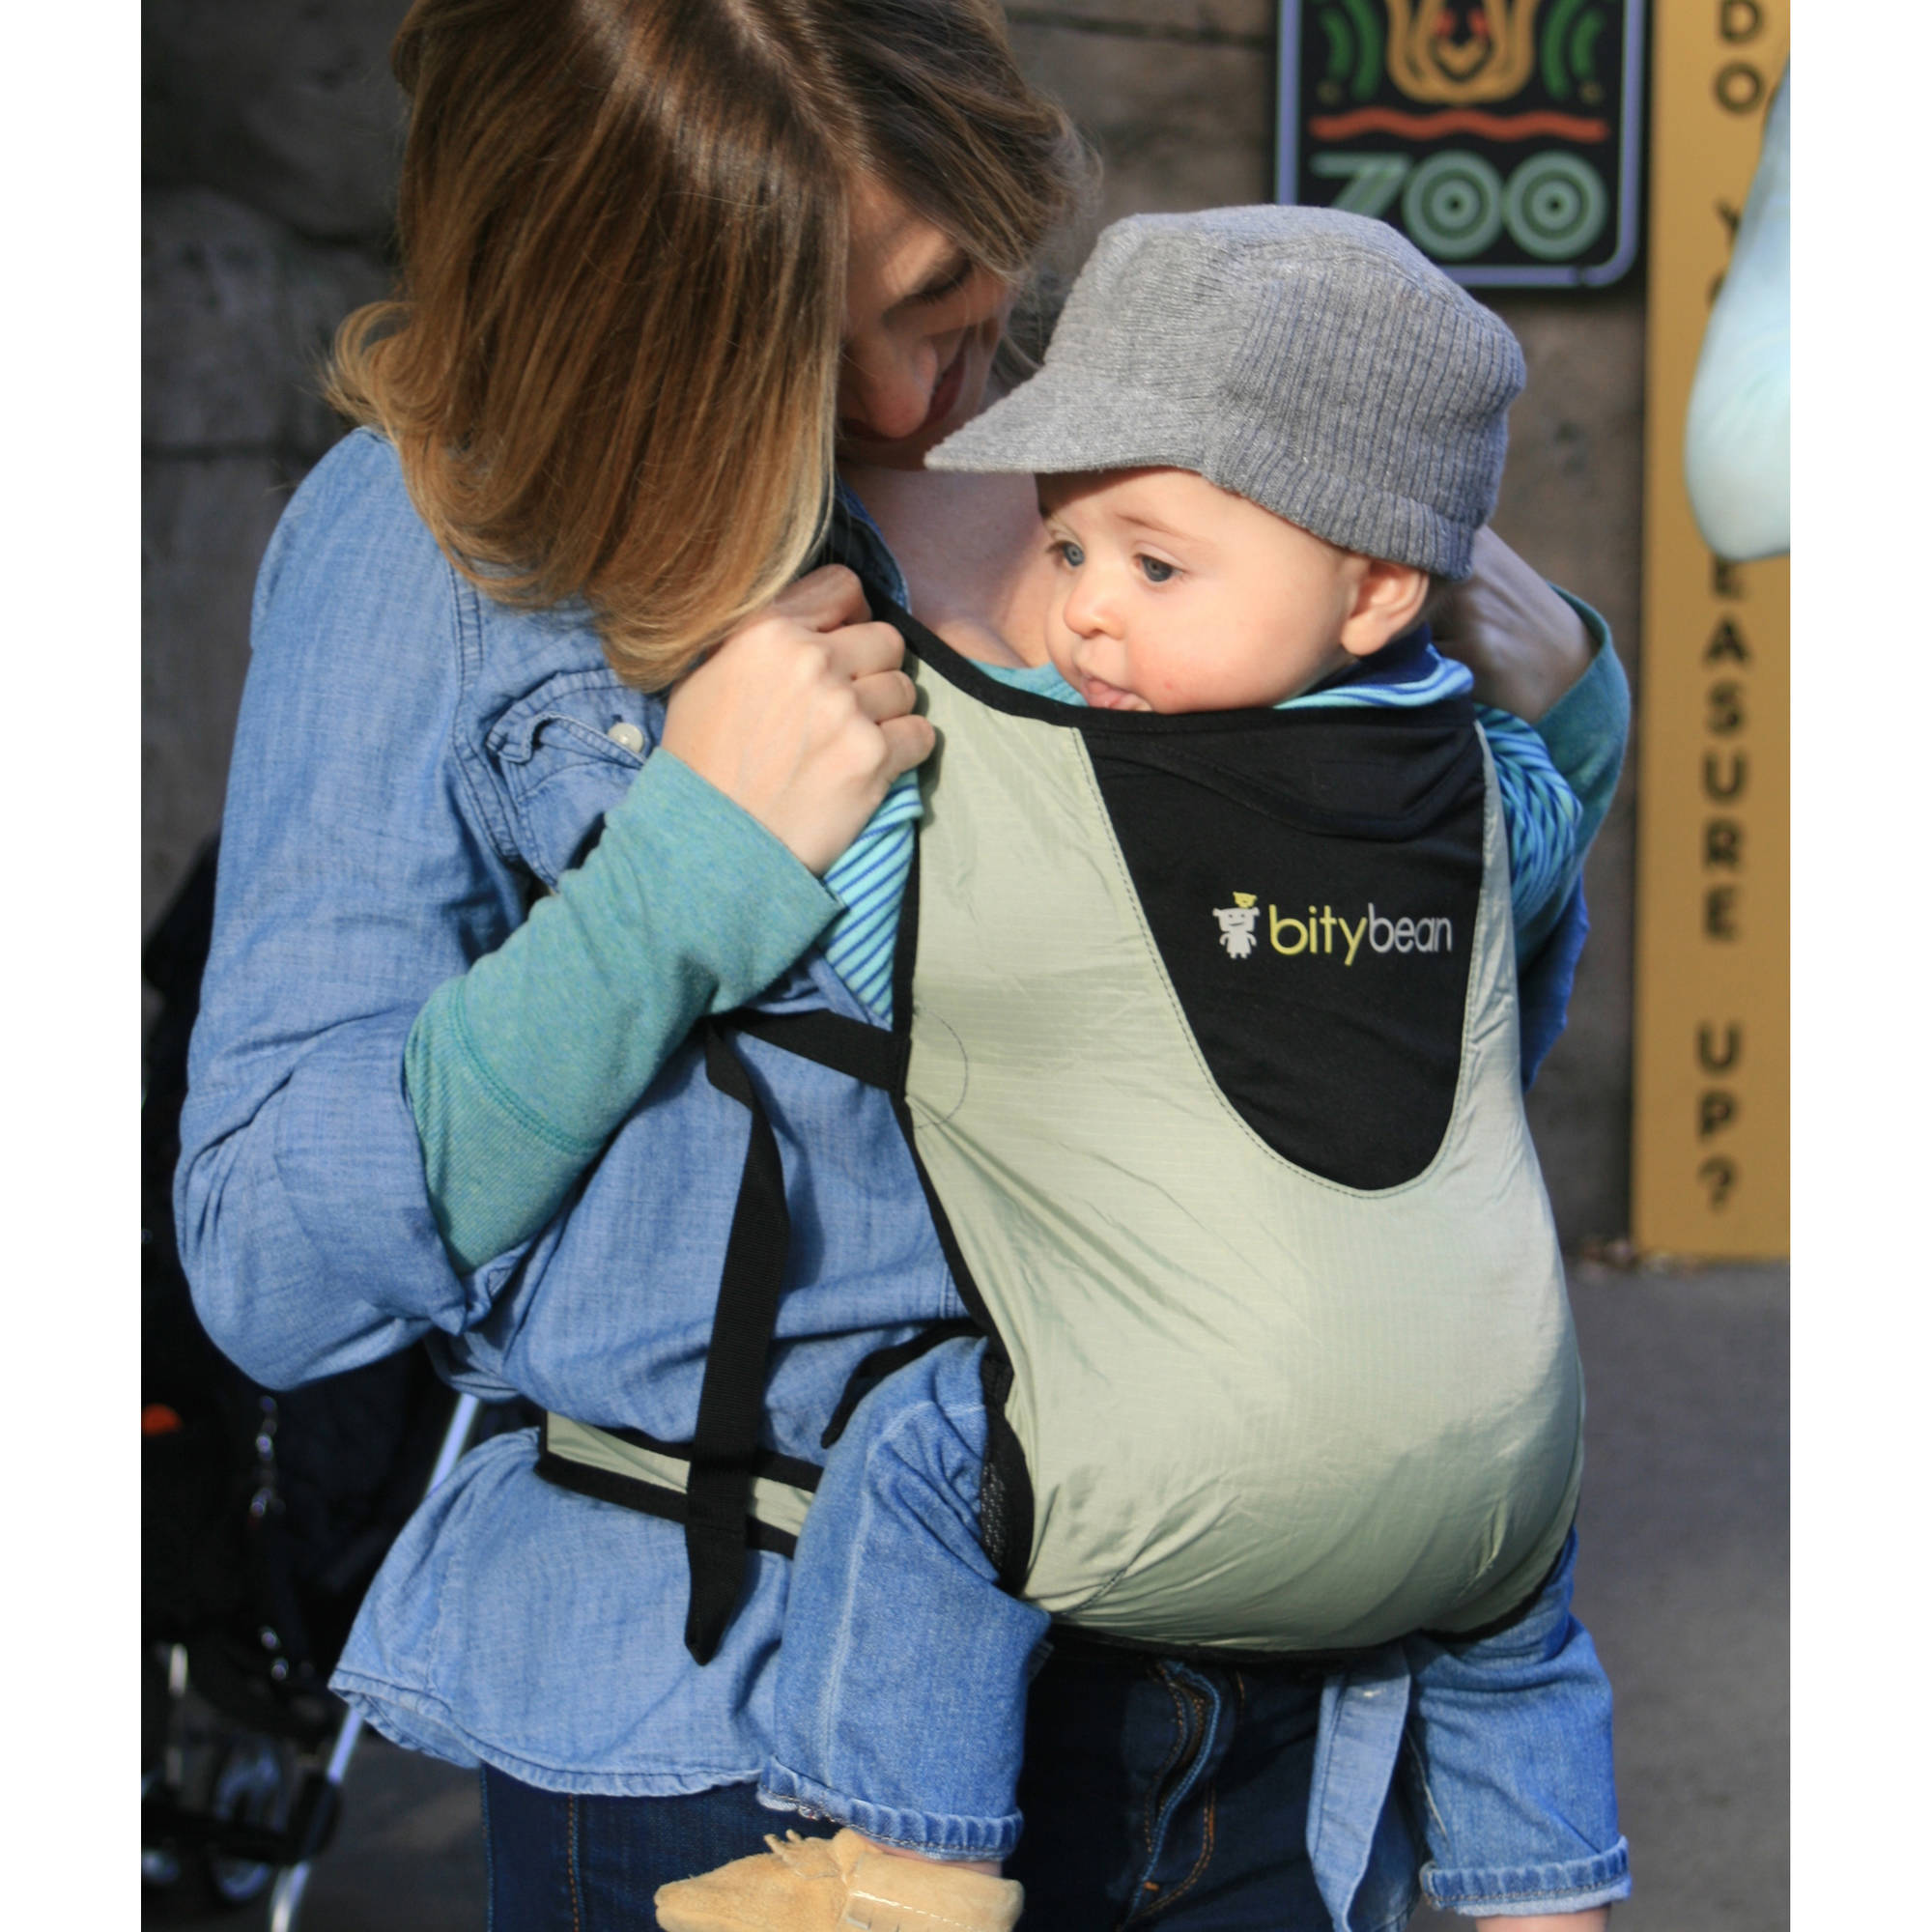 Bitybean Ultracompact Baby Carrier Sand Grey